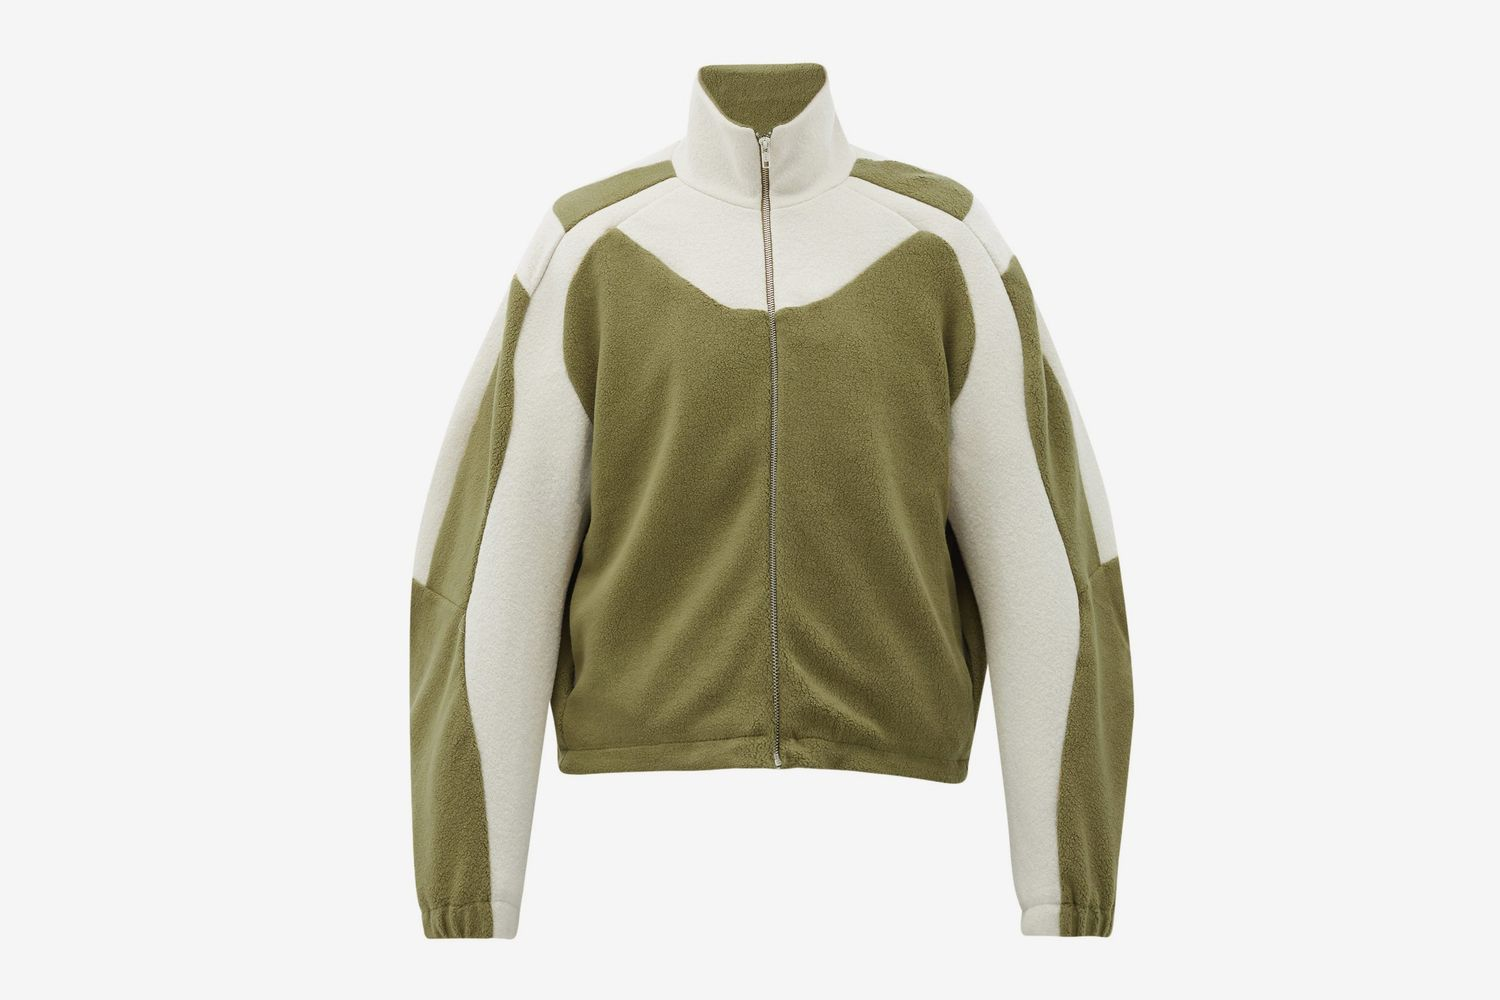 Bi-Colour Zipped Fleece Jacket